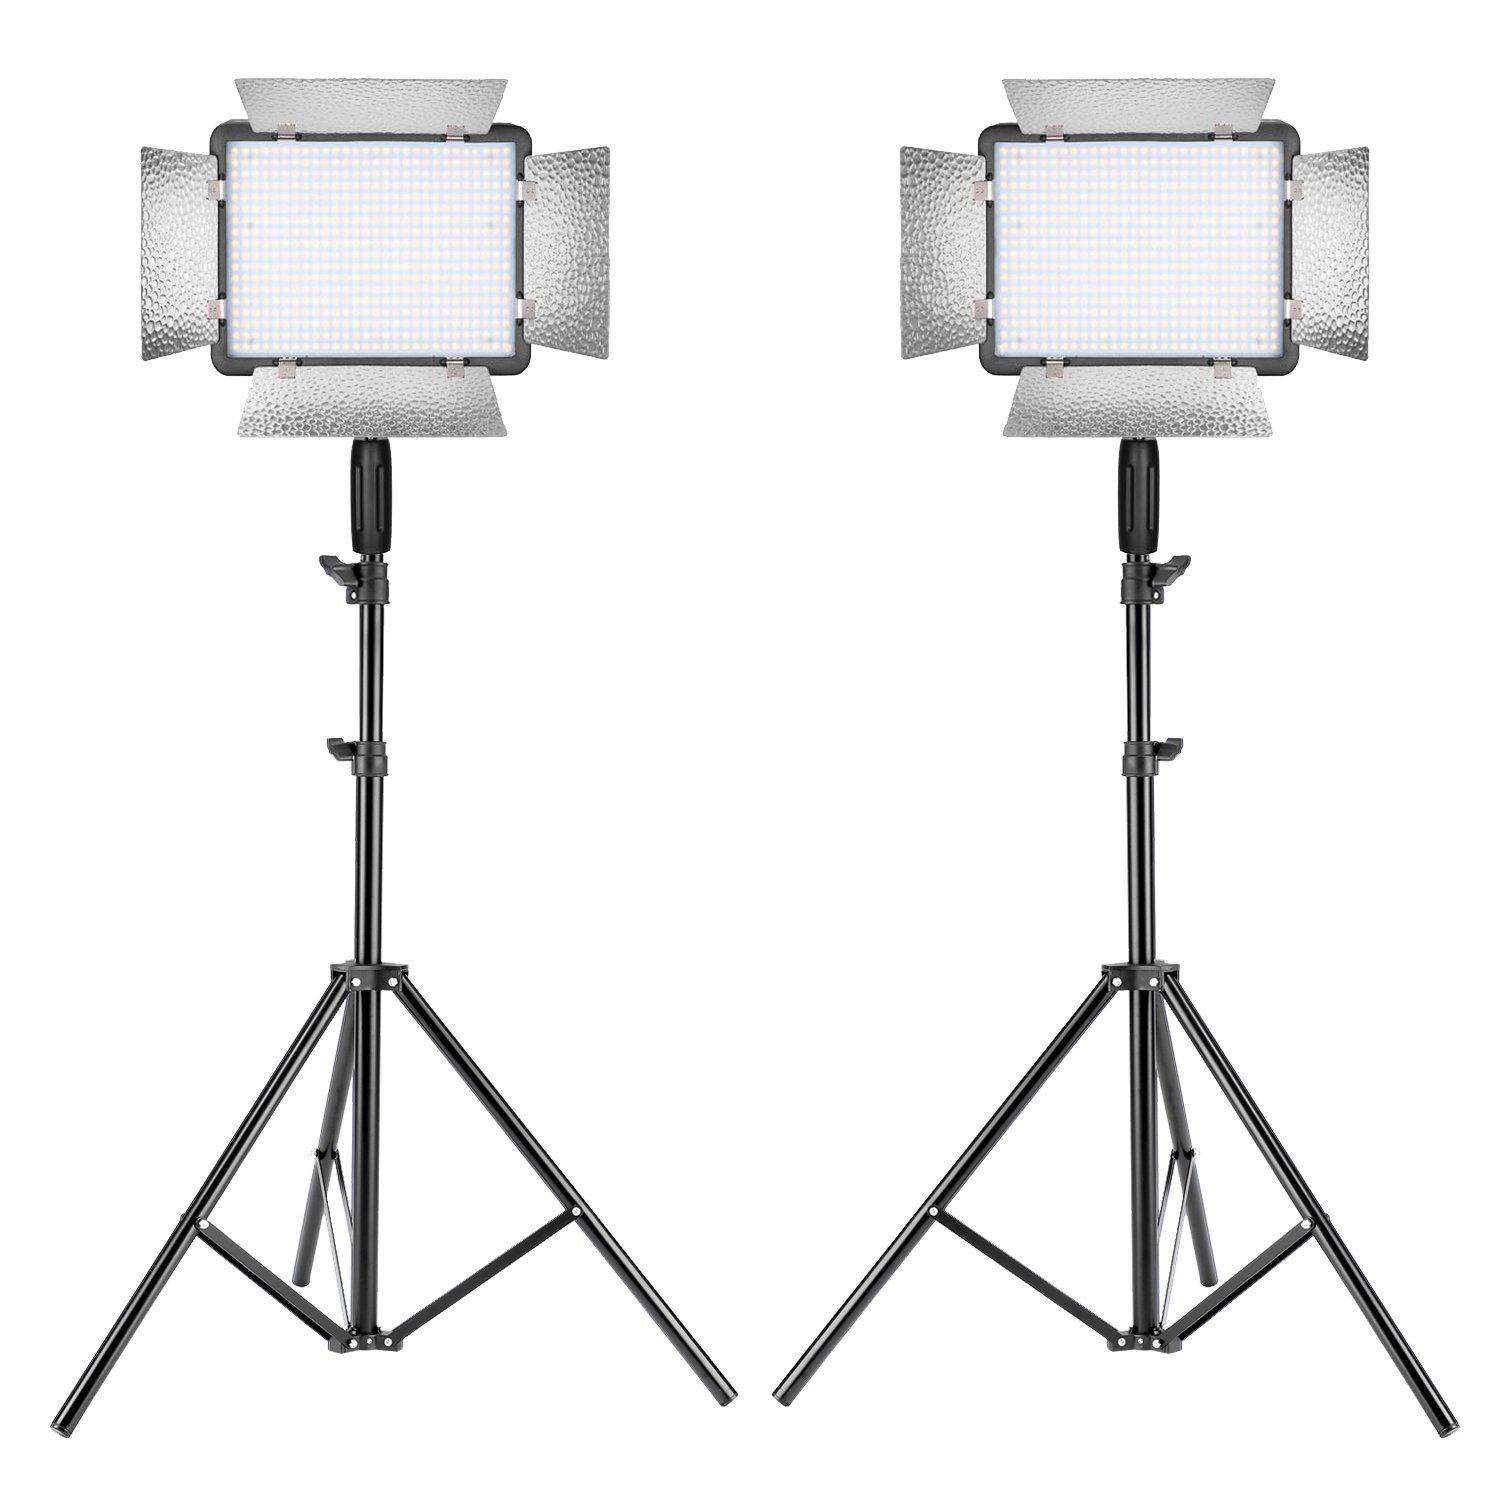 Neewer 2 Packs Photography Dimmable 500 LED Video Light with Remote Control and 8.5 feet/260 centimeters Light Stand for Canon, Nikon and Other Digital DSLR Cameras for Product Portrait Video Shooting